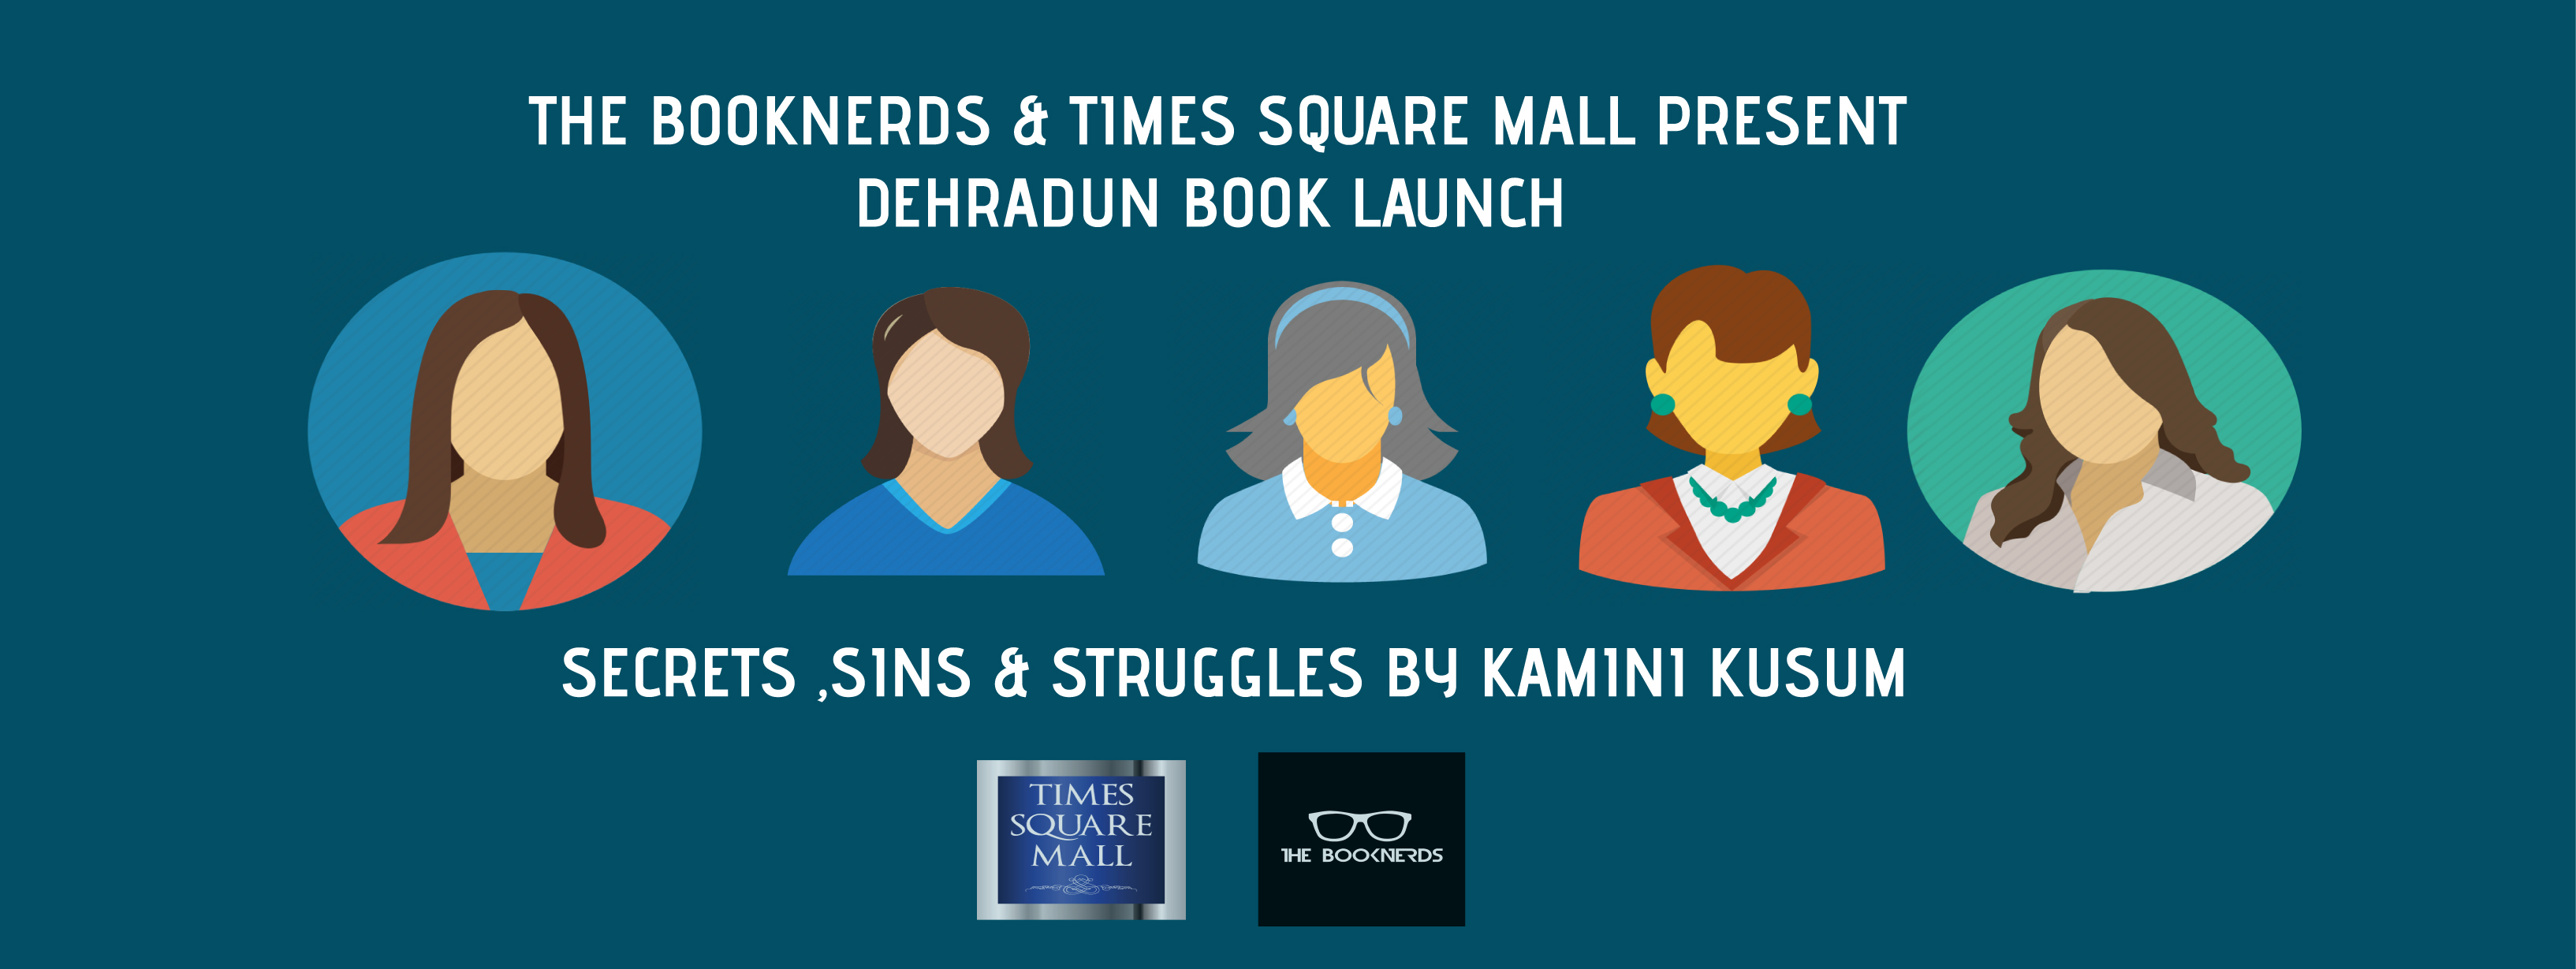 Book Launch:Secrets,Sins & Struggles by Kamini Kusum